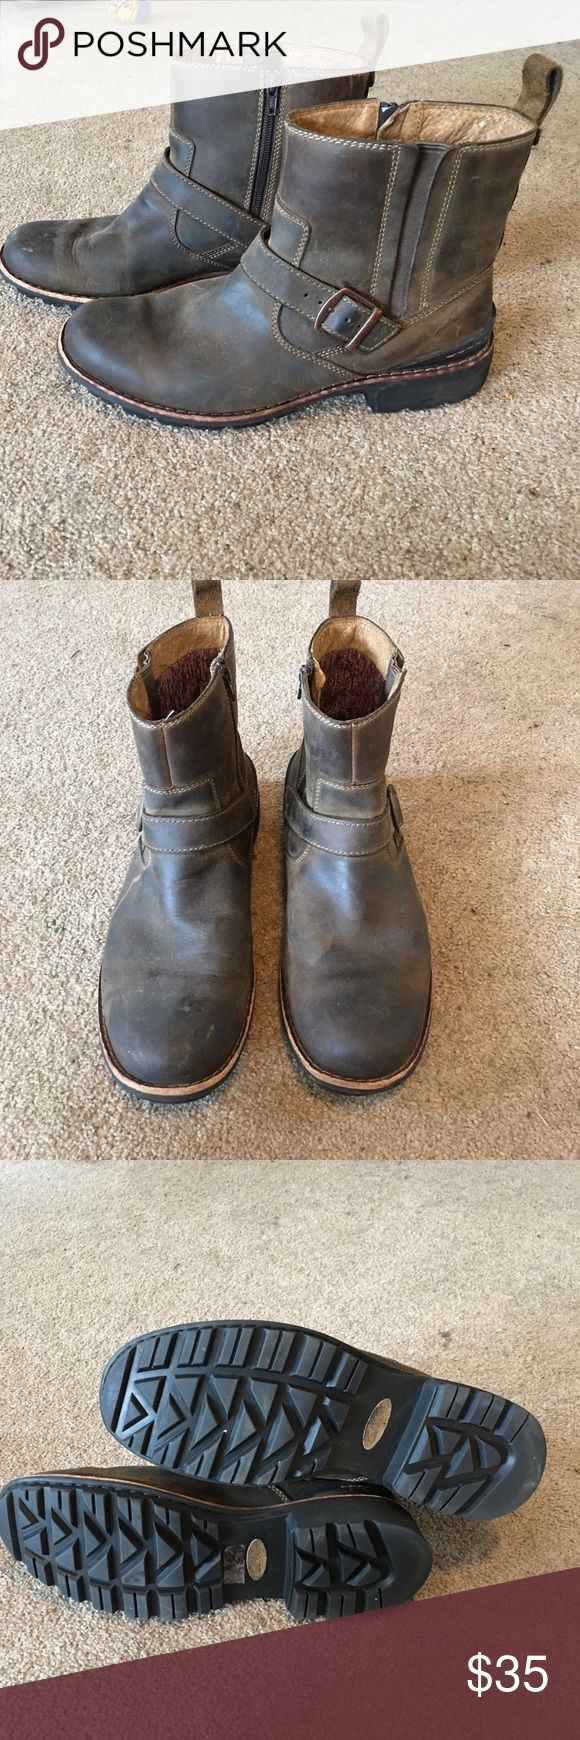 Men's Clarks boots Great condition and tons of life left. Clarks Shoes Boots